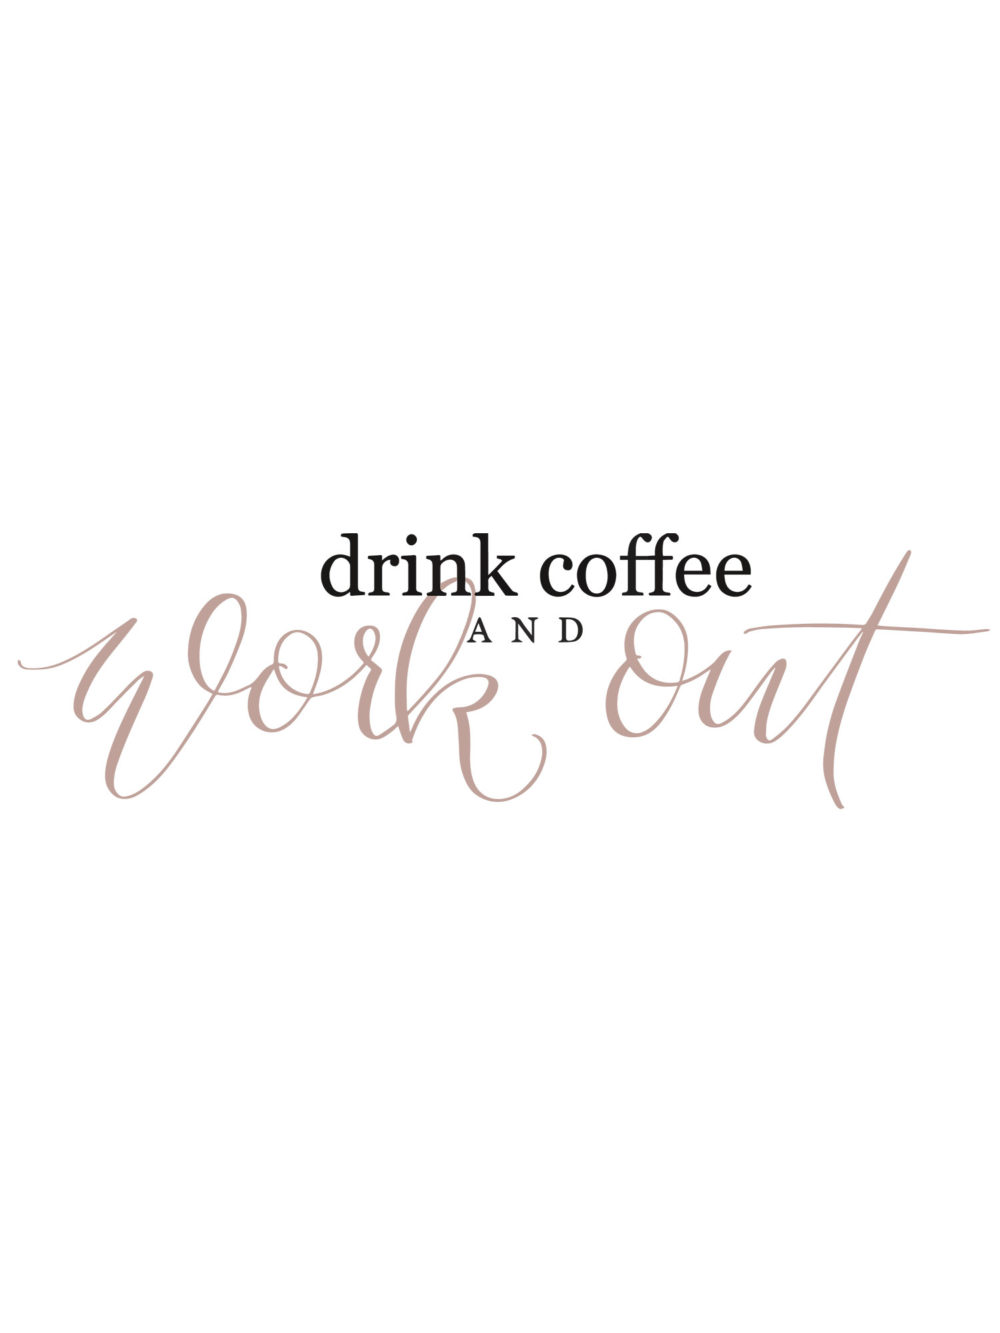 drink coffee and workout logo